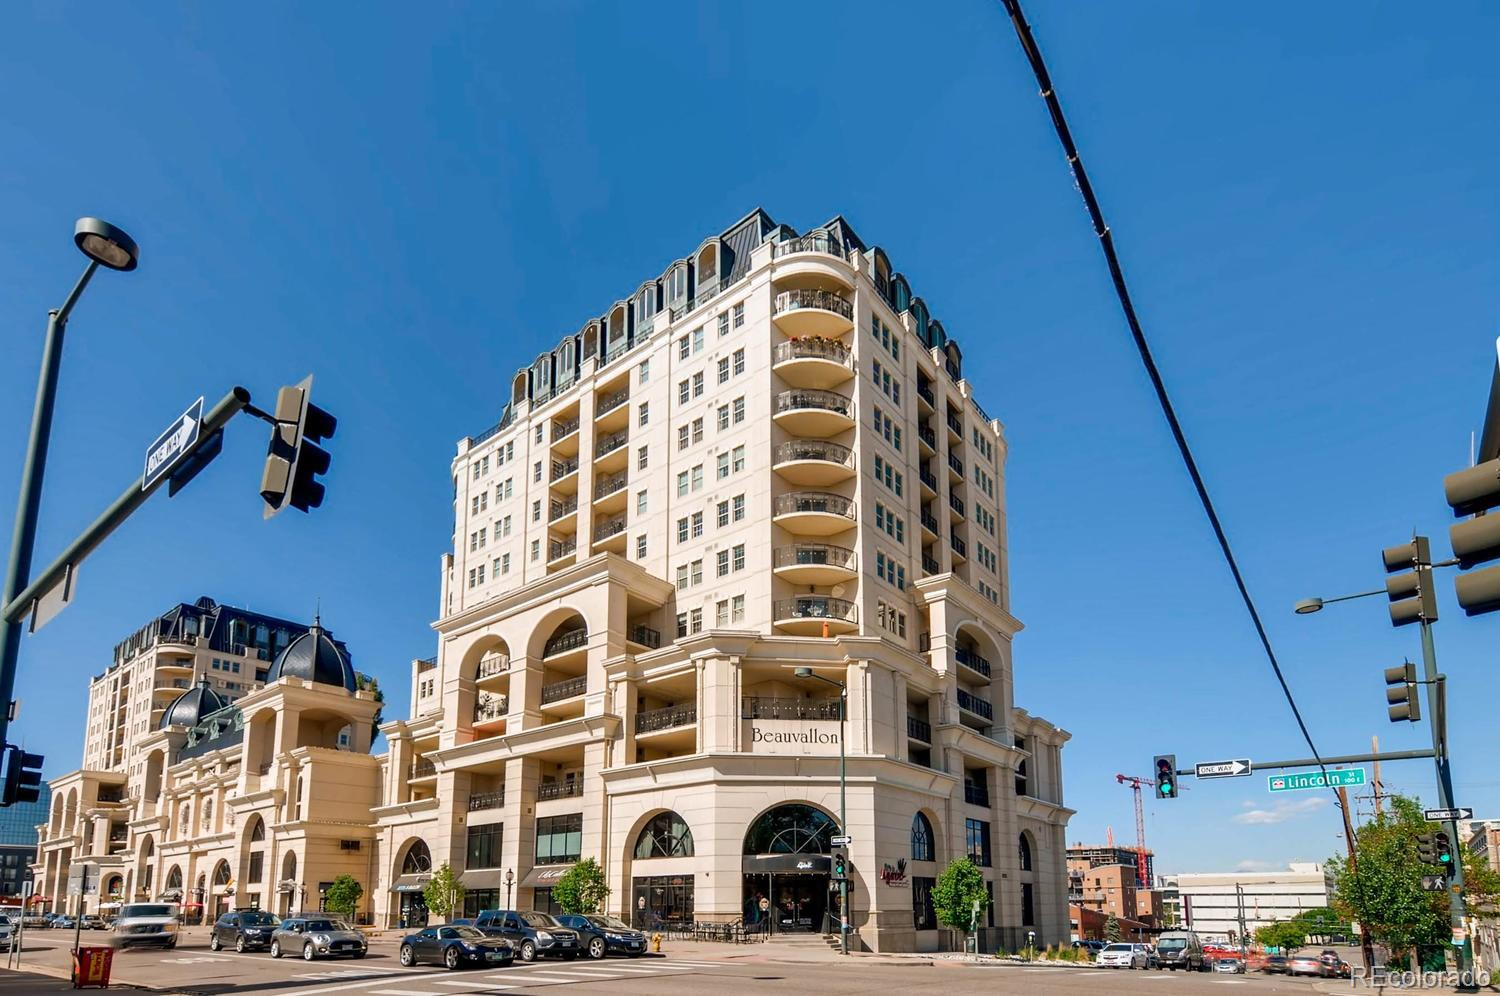 """Stunning unobstructed western views abound from this large, light filled, 11th floor, 1-bedroom/1-bath Beauvallon home*oversized kitchen w/ upgraded cabinets, 42"""" uppers, side-by-side refrigerator, cooktop, oven, slab granite counters w/ matching backsplash, and recessed lighting*spacious bathroom w/ lots of storage, granite counters, and deep jetted soaking tub*sun bathed bedroom w/ two nicely sized closets*private balcony w/ mesmerizing western and city views*in home laundry*loads of storage*in ceiling sound*underground deeded parking*separate storage located in building*pool/hot tub/retail in community*easy walk to restaurants*"""